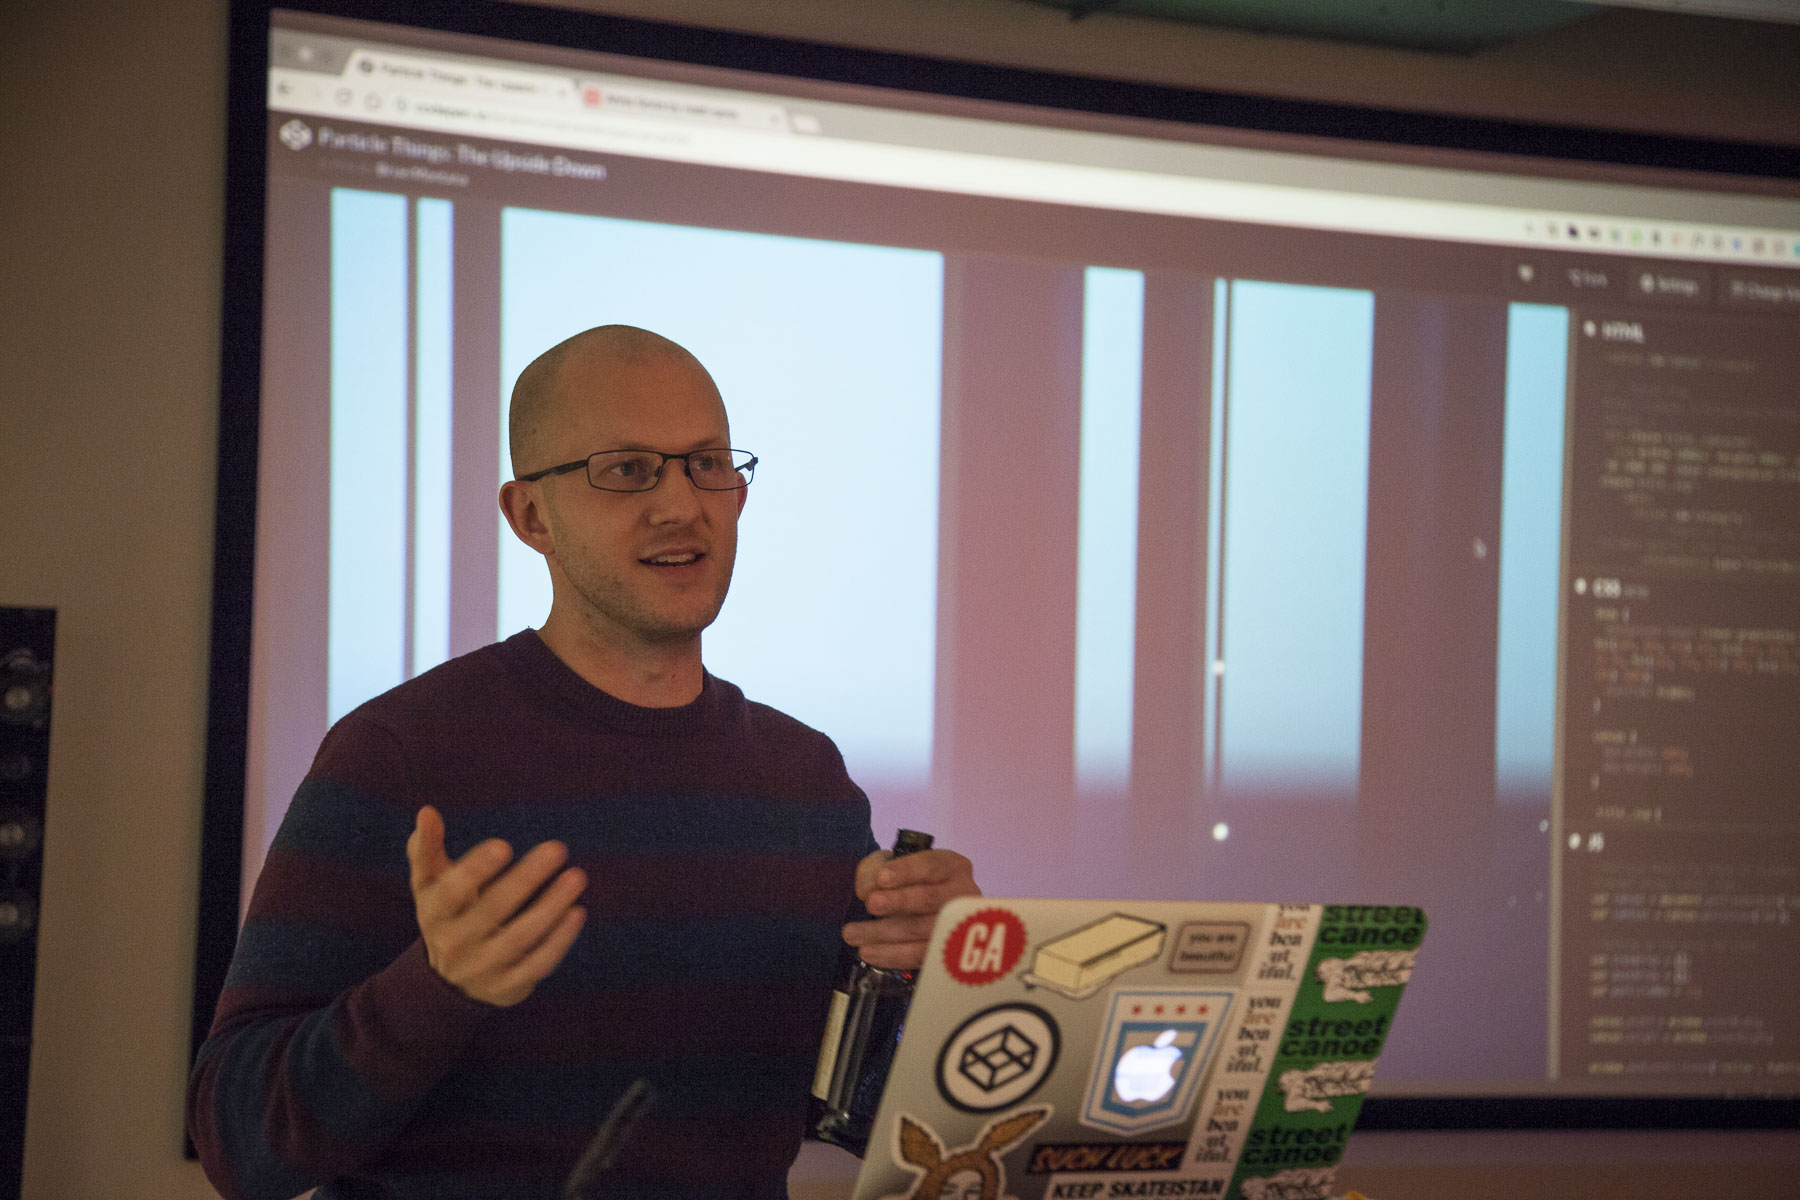 Brian Montana presenting at CodePen Chicago